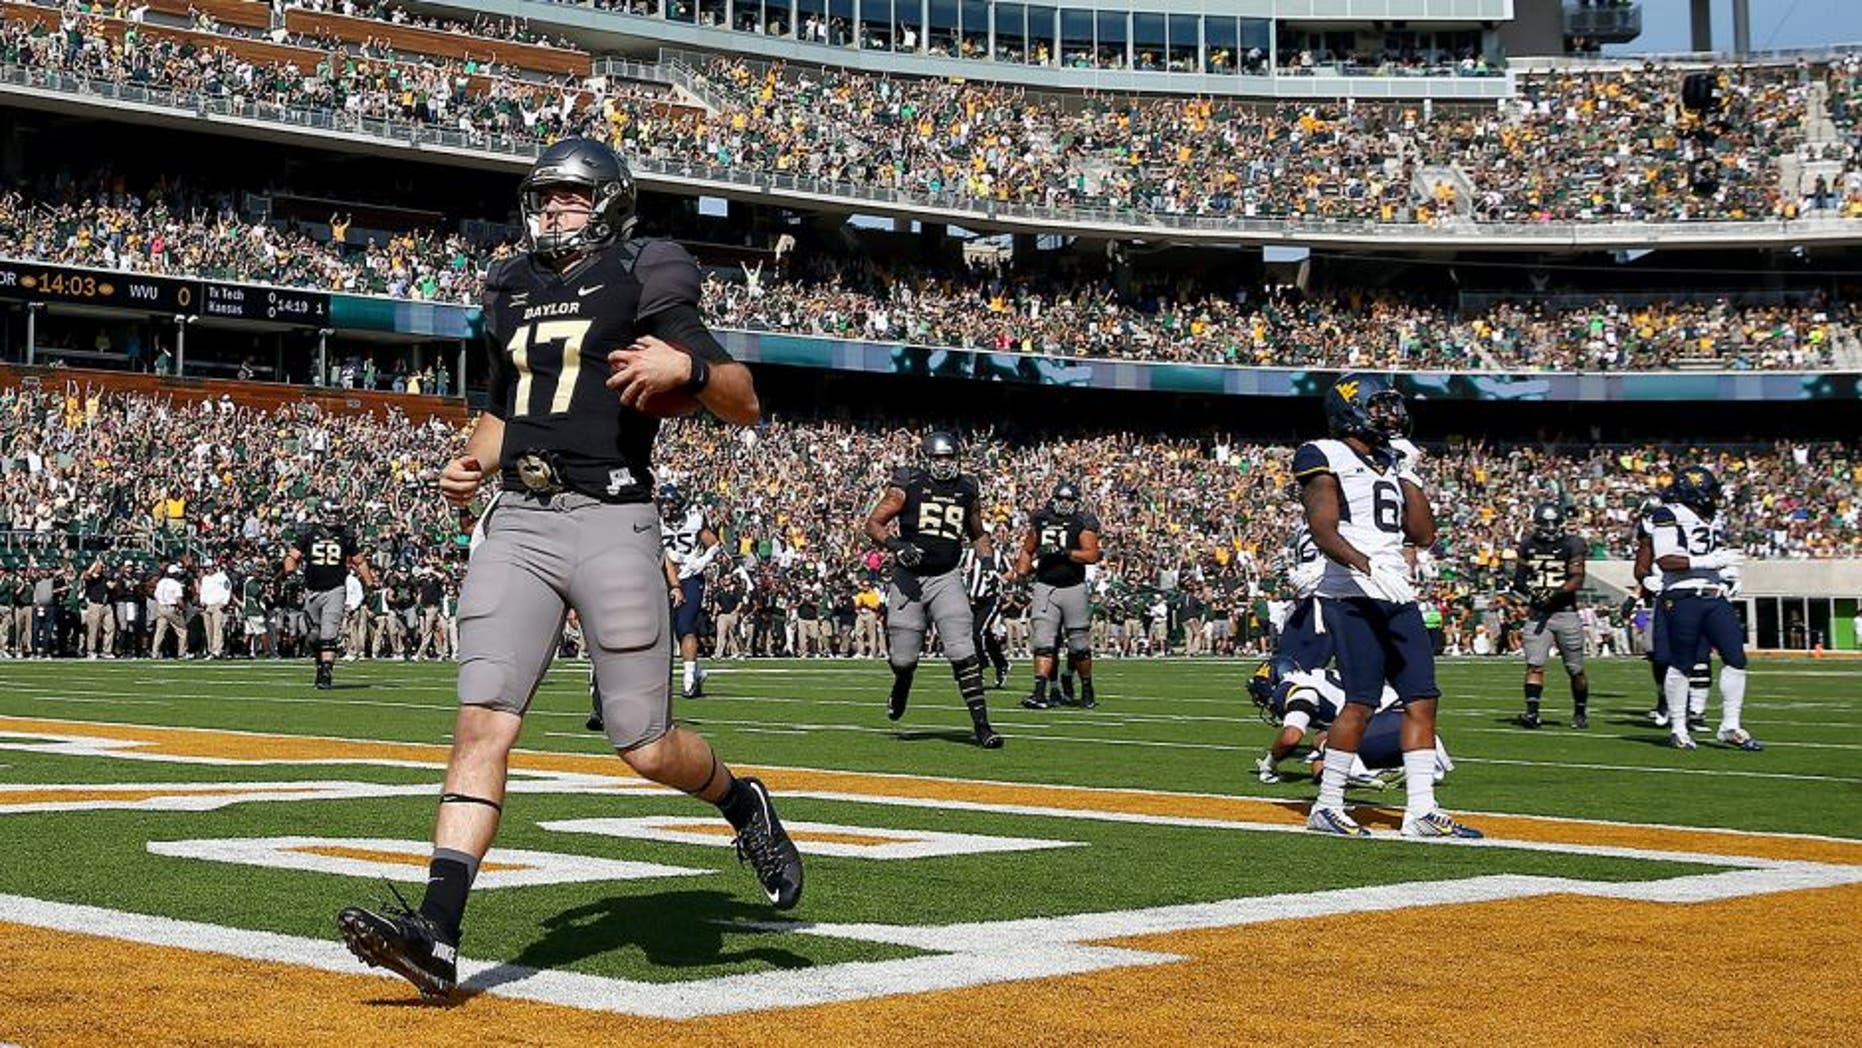 WACO, TX - OCTOBER 17: Seth Russell #17 of the Baylor Bears scores a touchdown against the West Virginia Mountaineers in the second quarter at McLane Stadium on October 17, 2015 in Waco, Texas. (Photo by Tom Pennington/Getty Images)